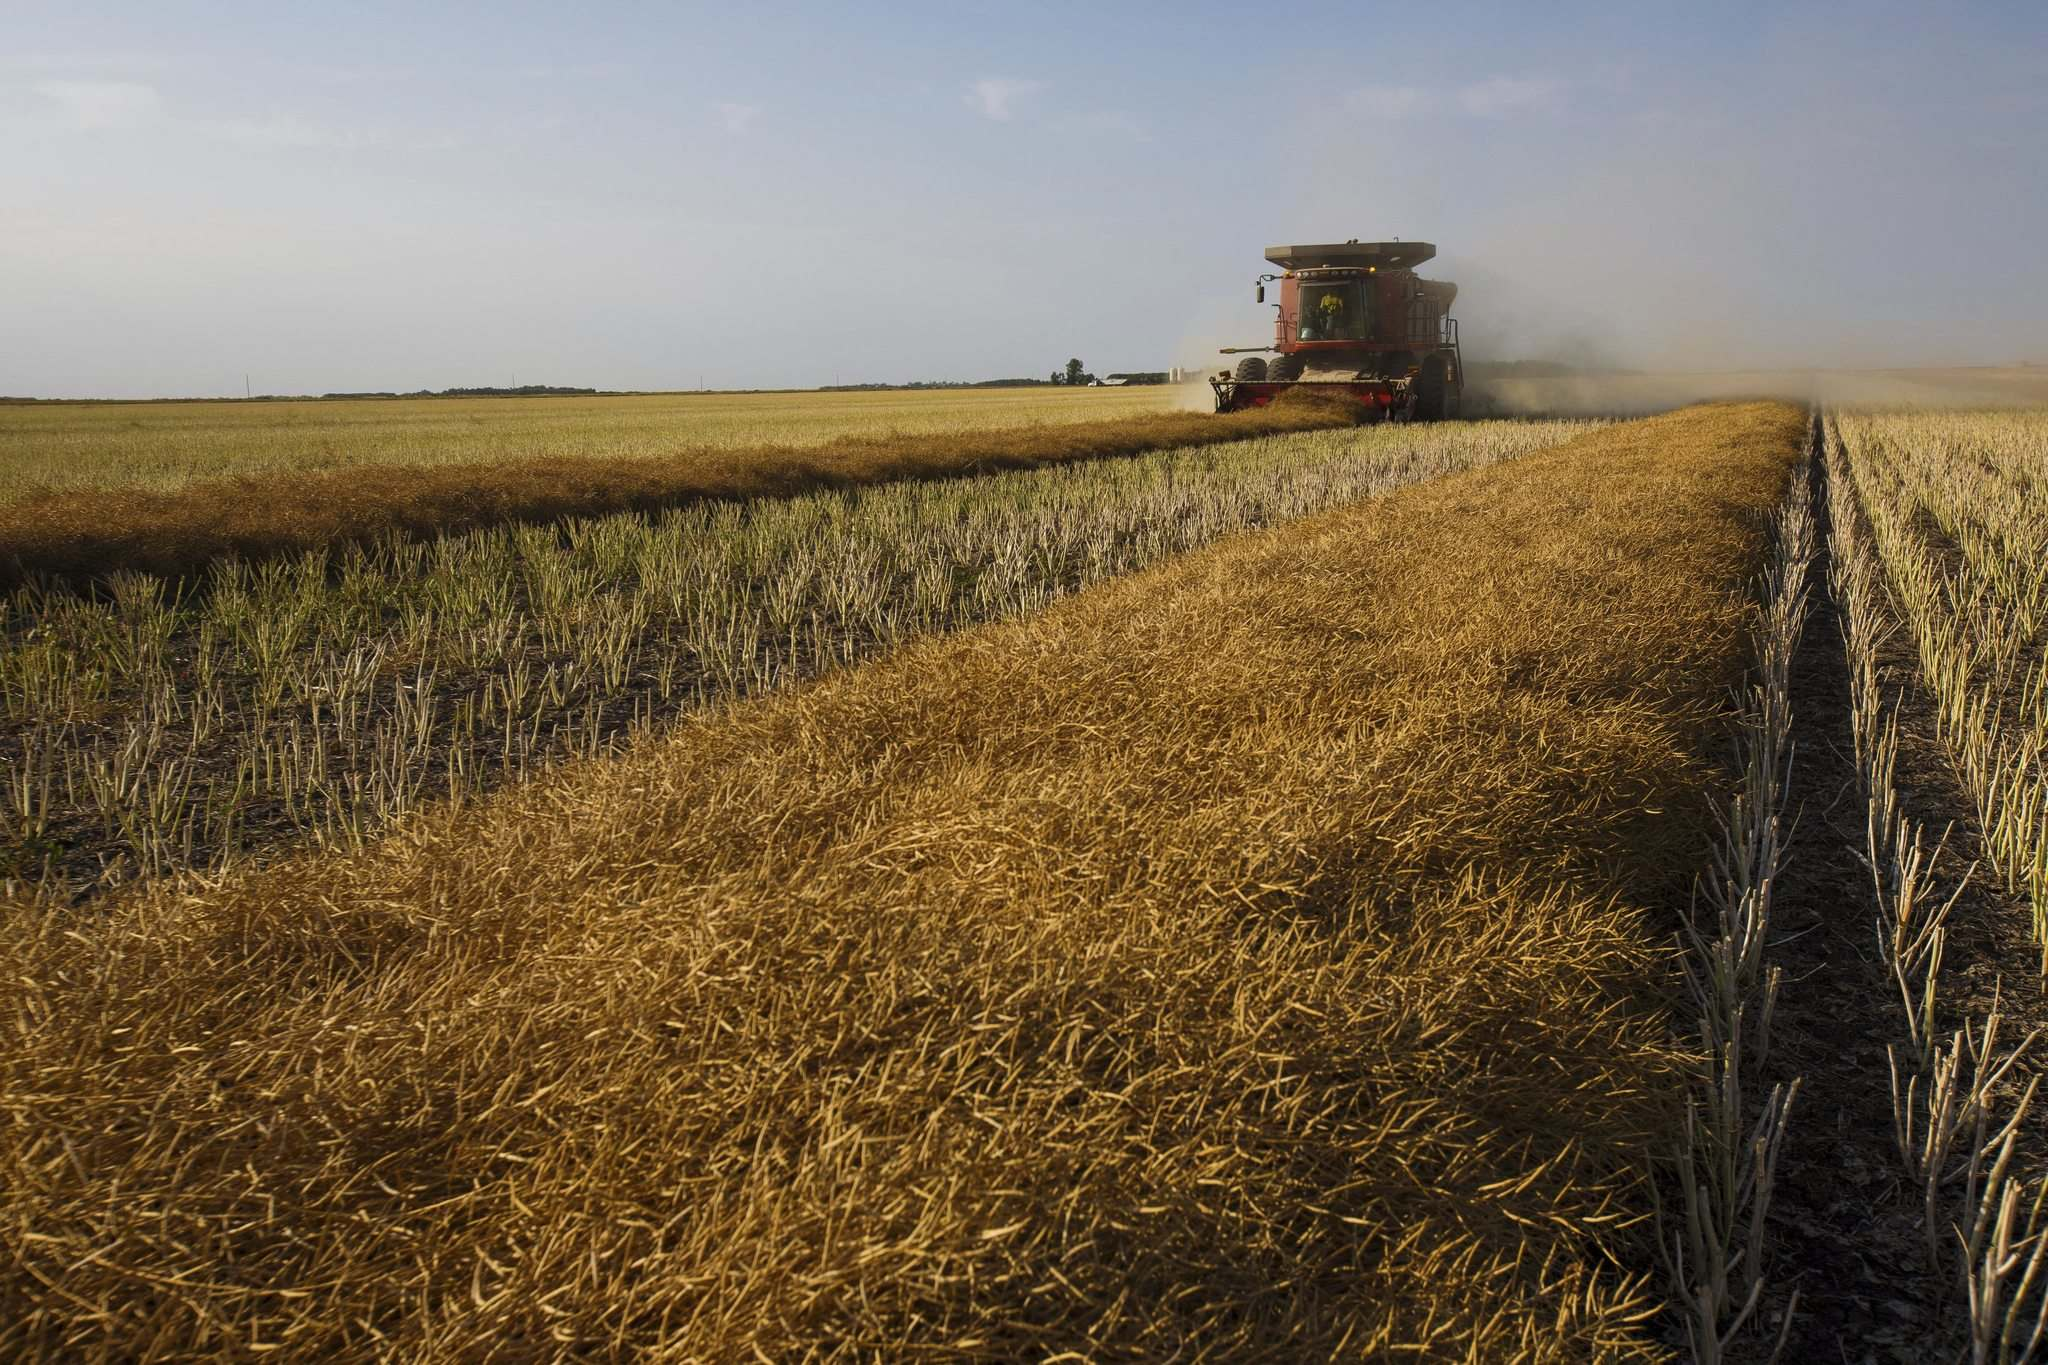 MIKE DEAL / WINNIPEG FREE PRESS FILES</p><p>A July report from Statistics Canada projects canola production will be down close to 25 per cent countrywide this year. Manitoba is expected to fare slightly better with only a 14 per cent decline.</p>